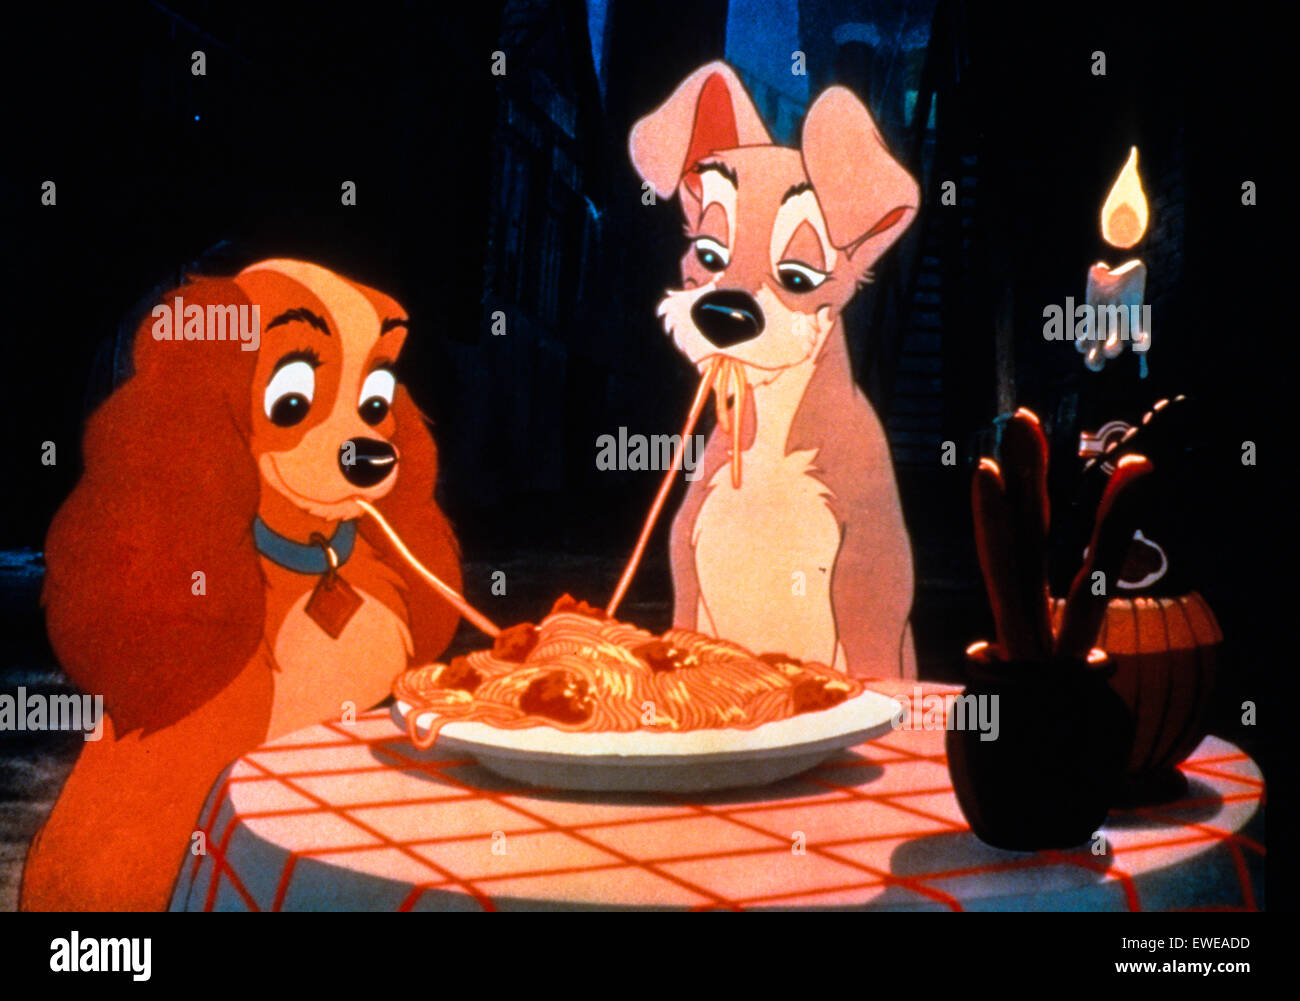 Lady and the Tramp - Stock Image